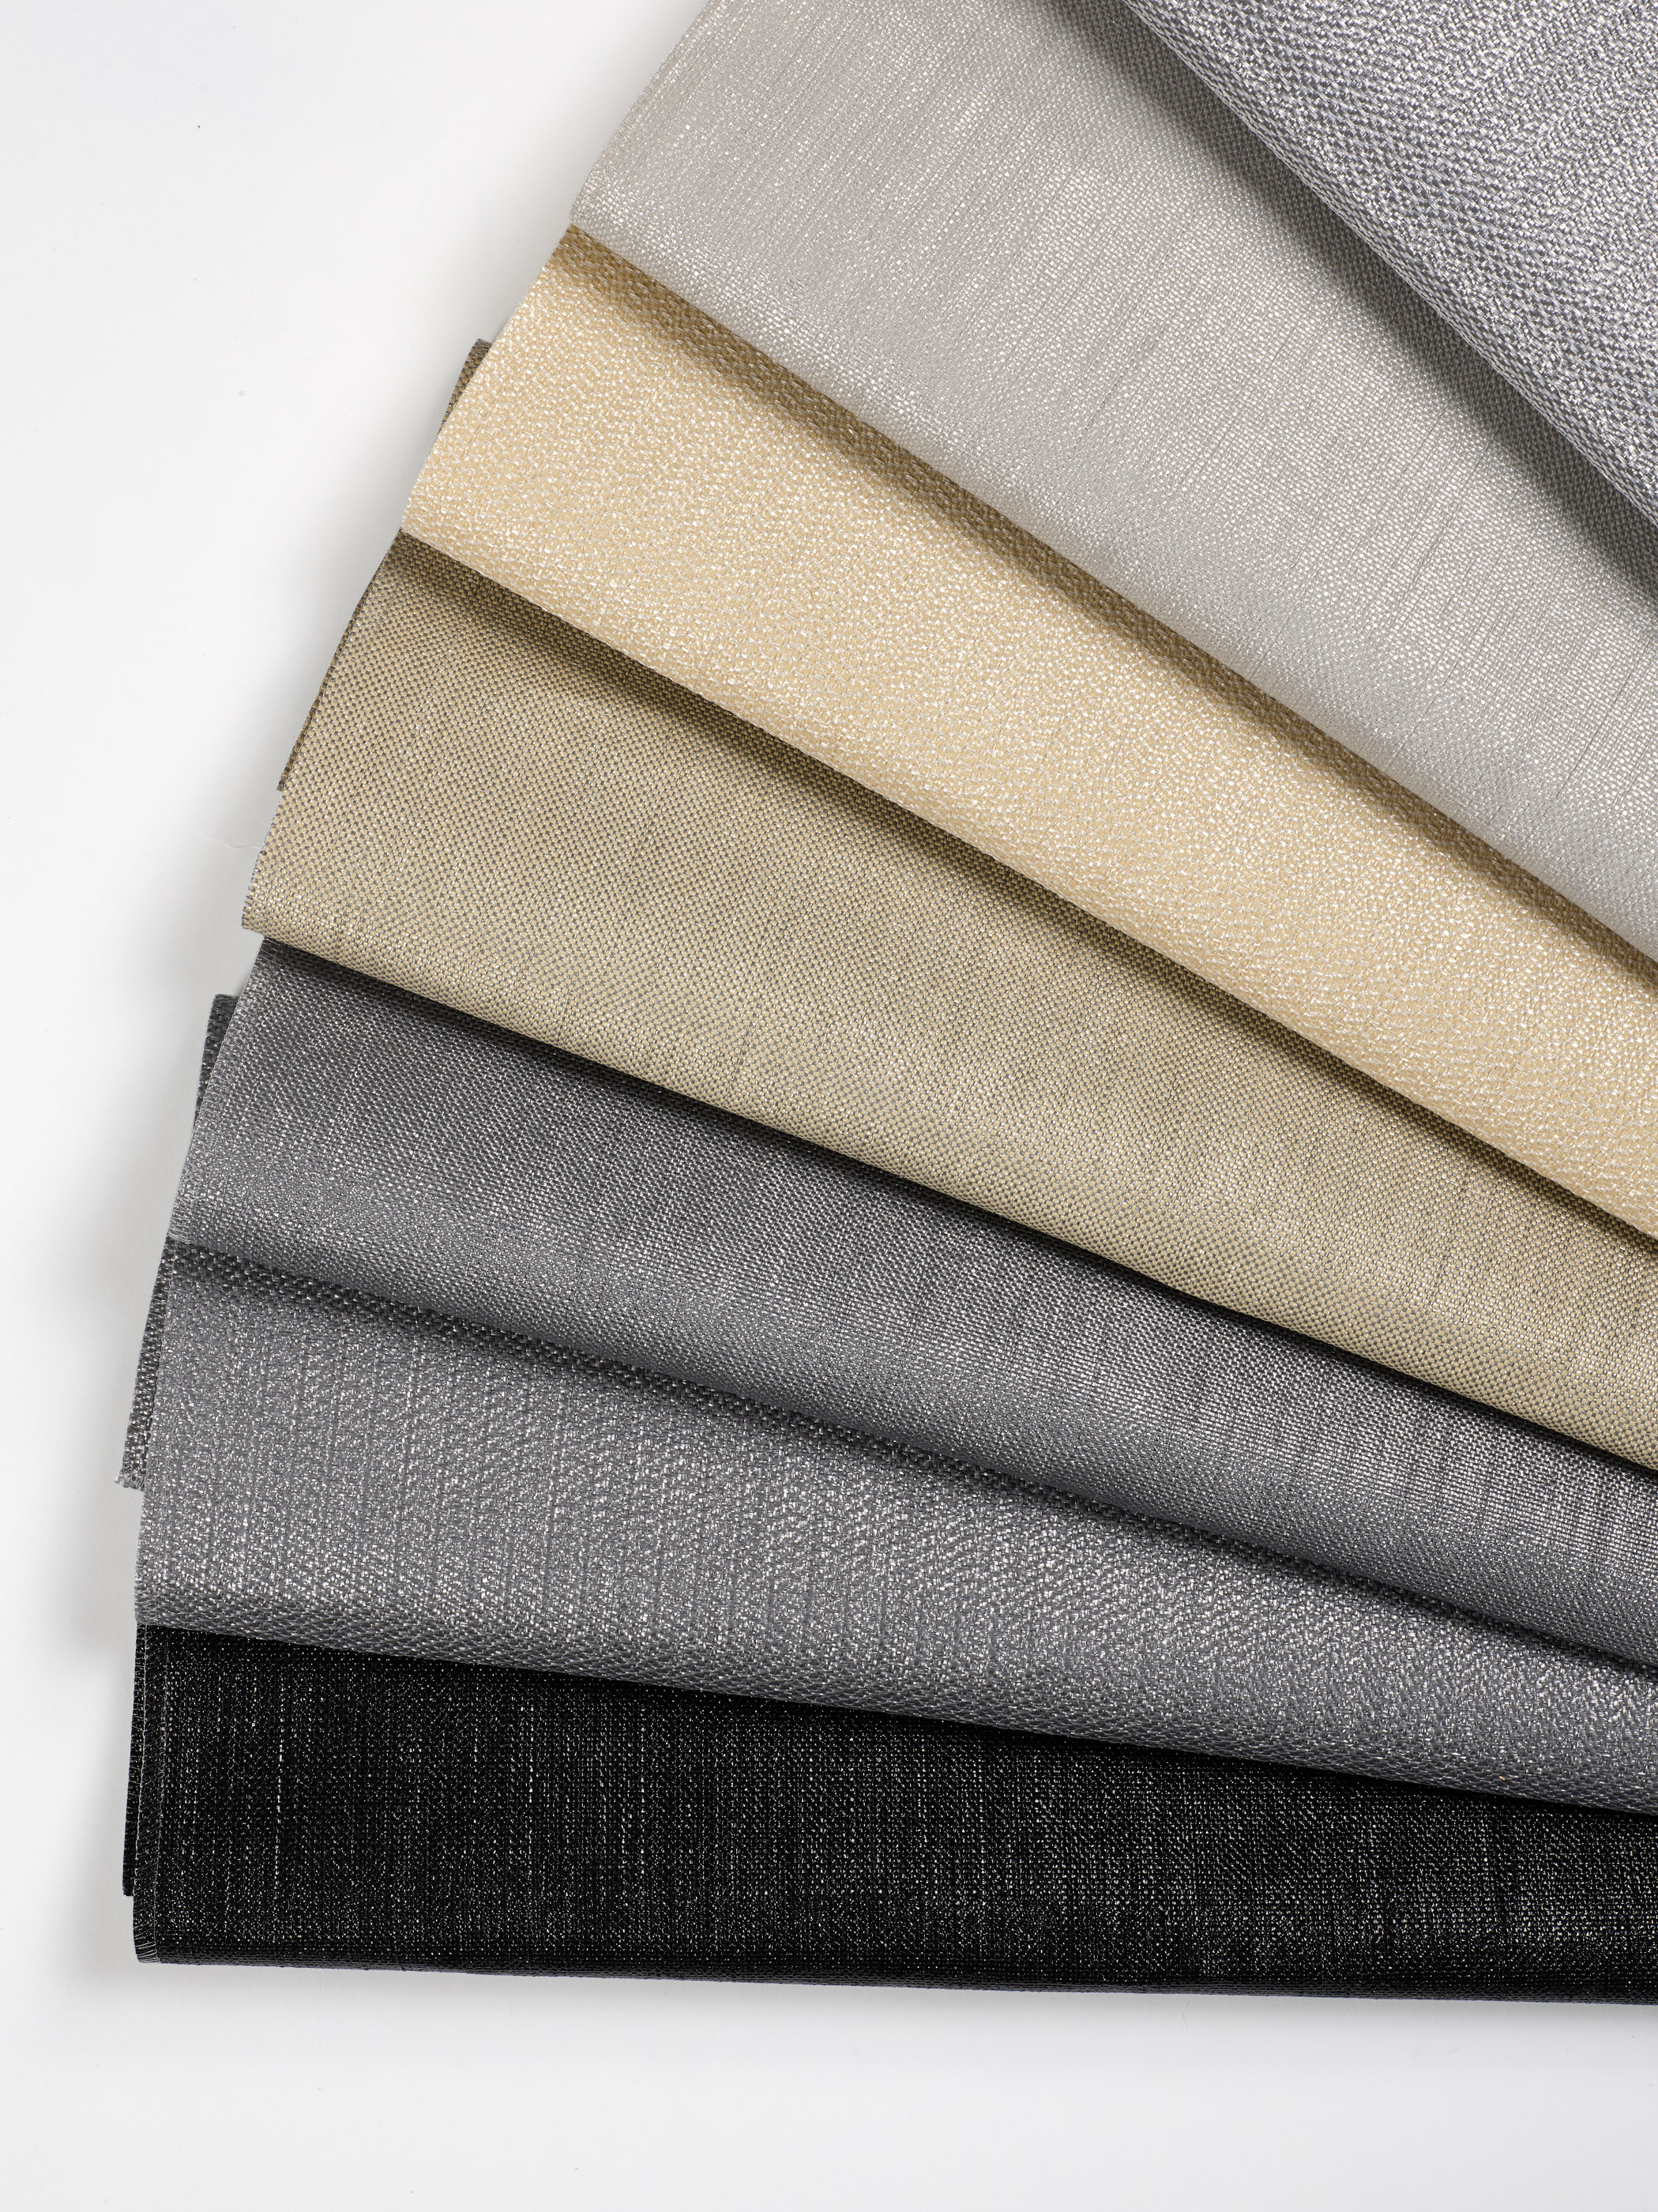 Alias ii backed wallcovering knolltextiles the outline collection alias ii asterisk ii fandeluxe Gallery